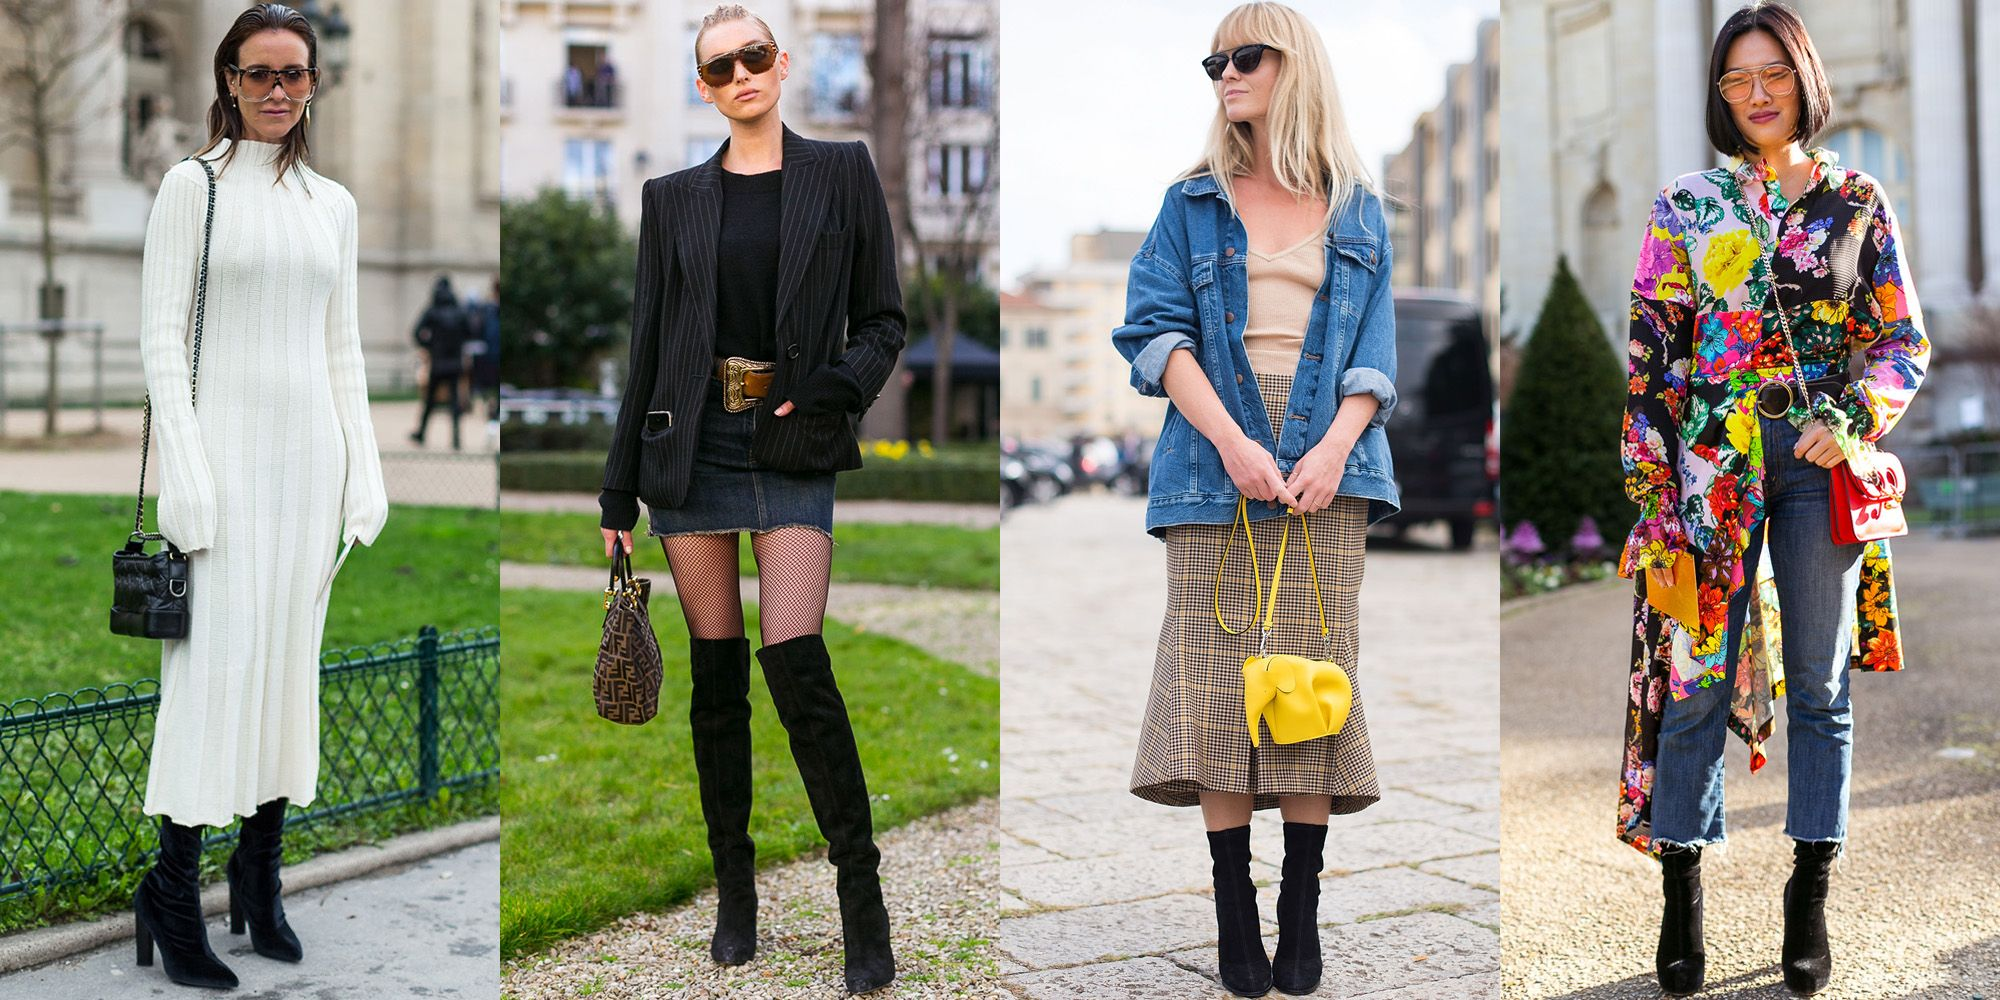 50 Cute Fall Outfit Ideas 2017   Autumn Outfit Inspiration for Women